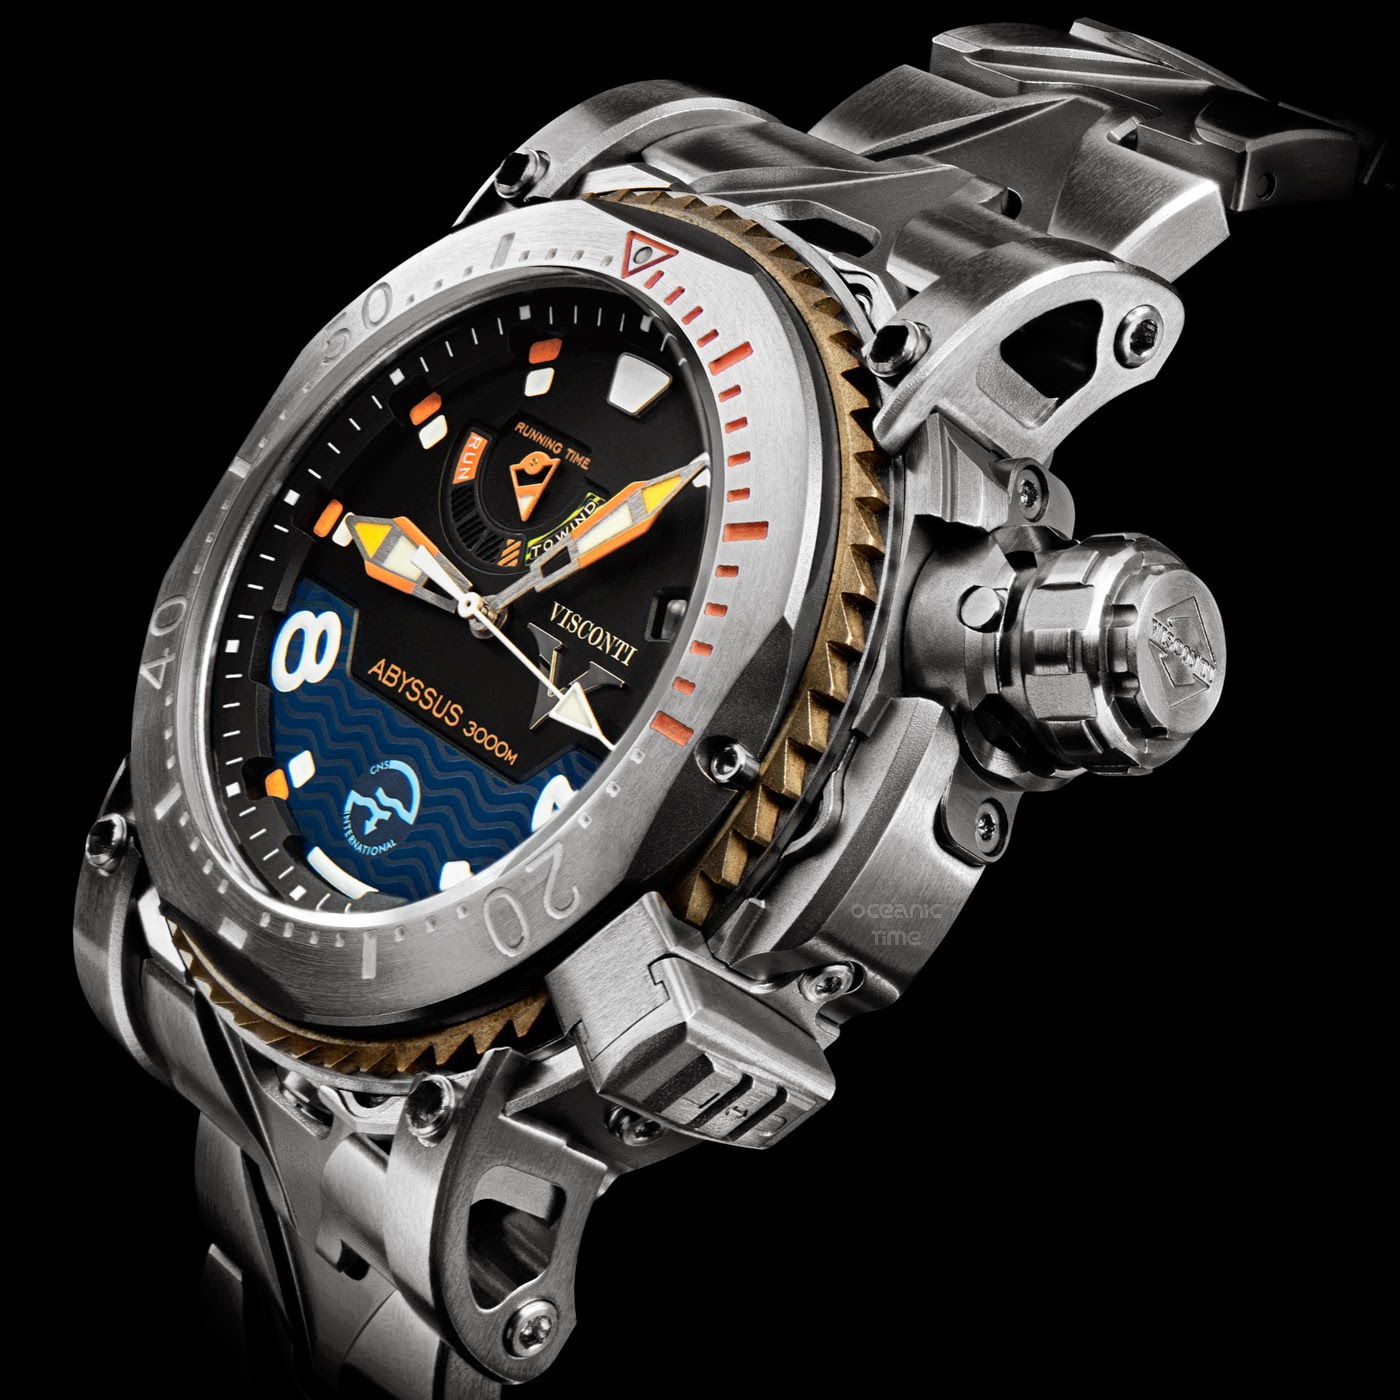 oceanictime visconti scuba abyssus 3000m continuation of a florentine dive watch legacy